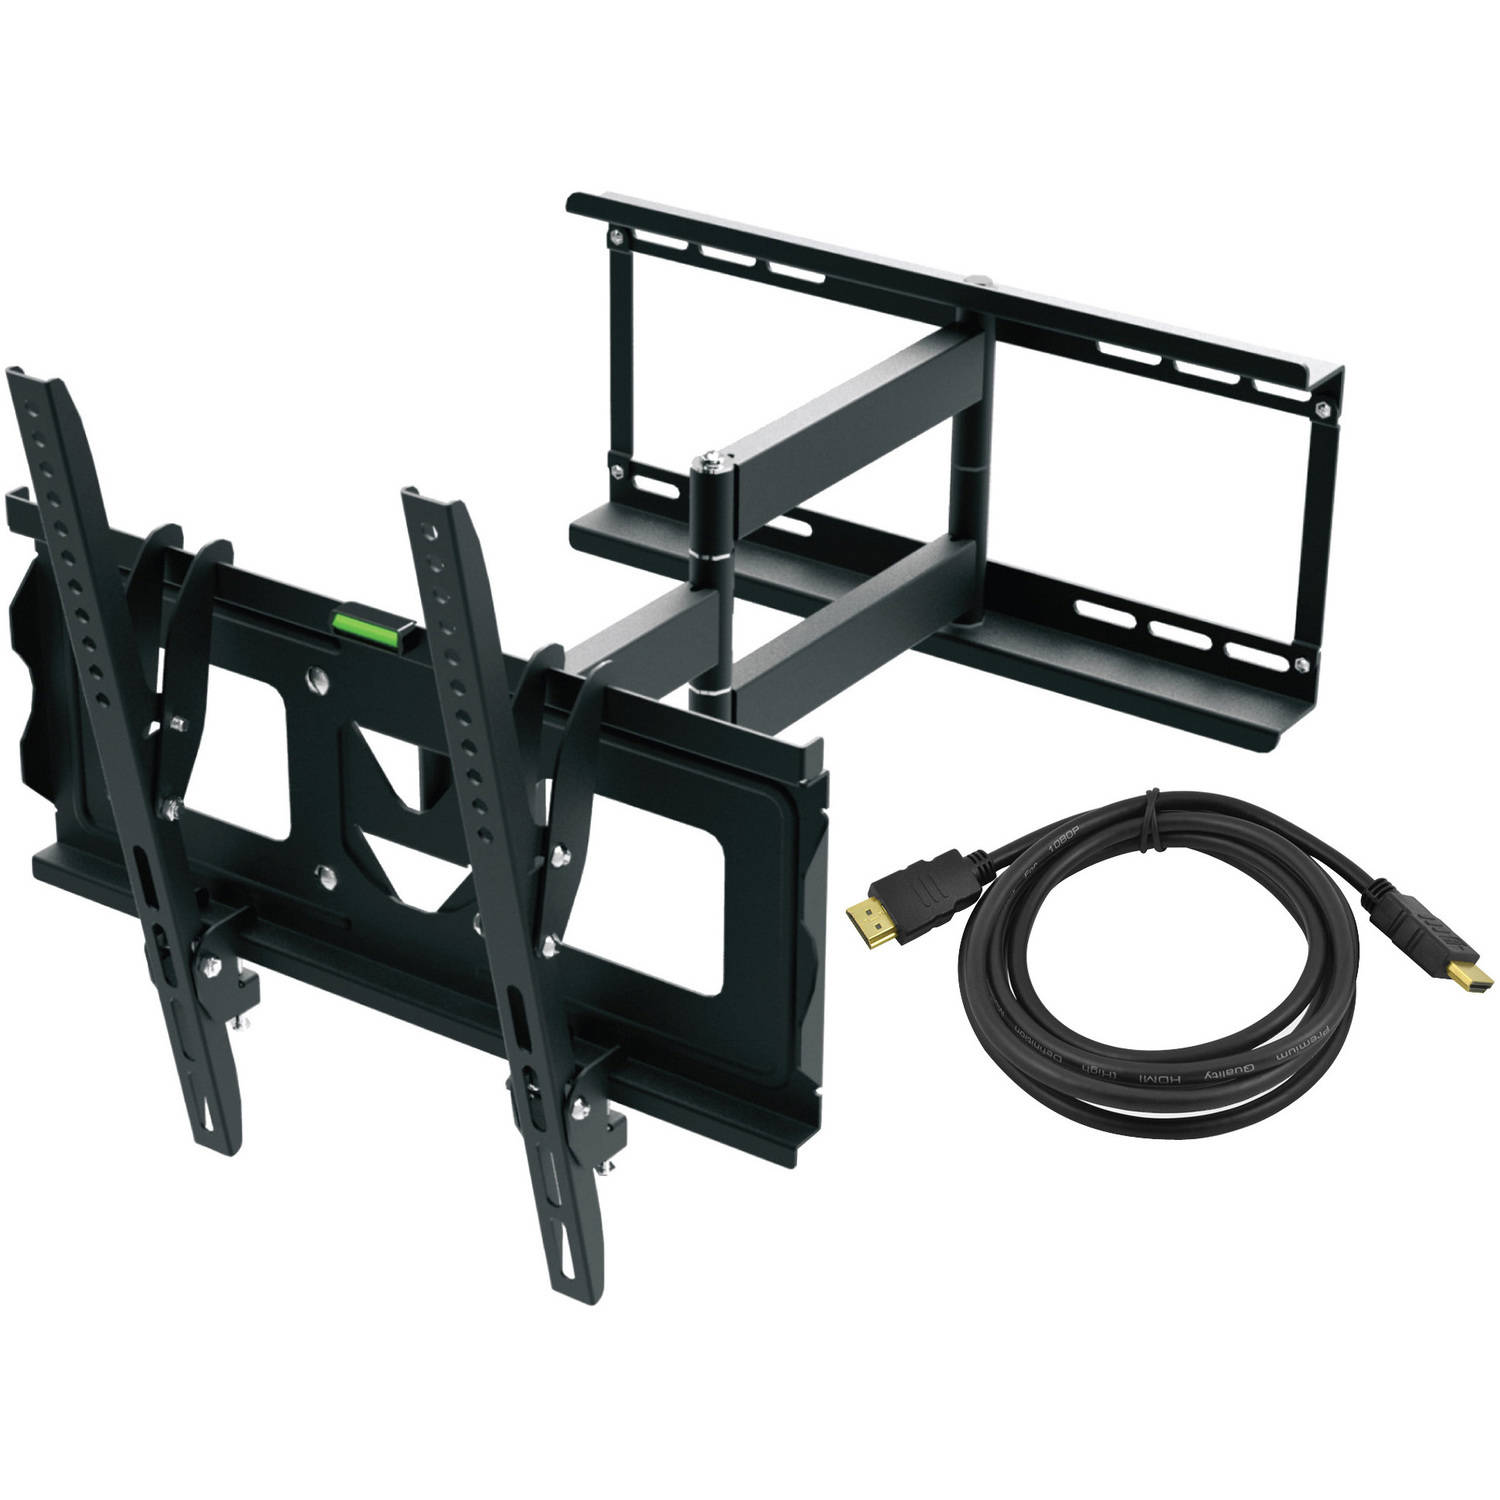 "Ematic Tilting TV Wall Mount Kit with HDMI Cable for 23"" - 47"" Displays"